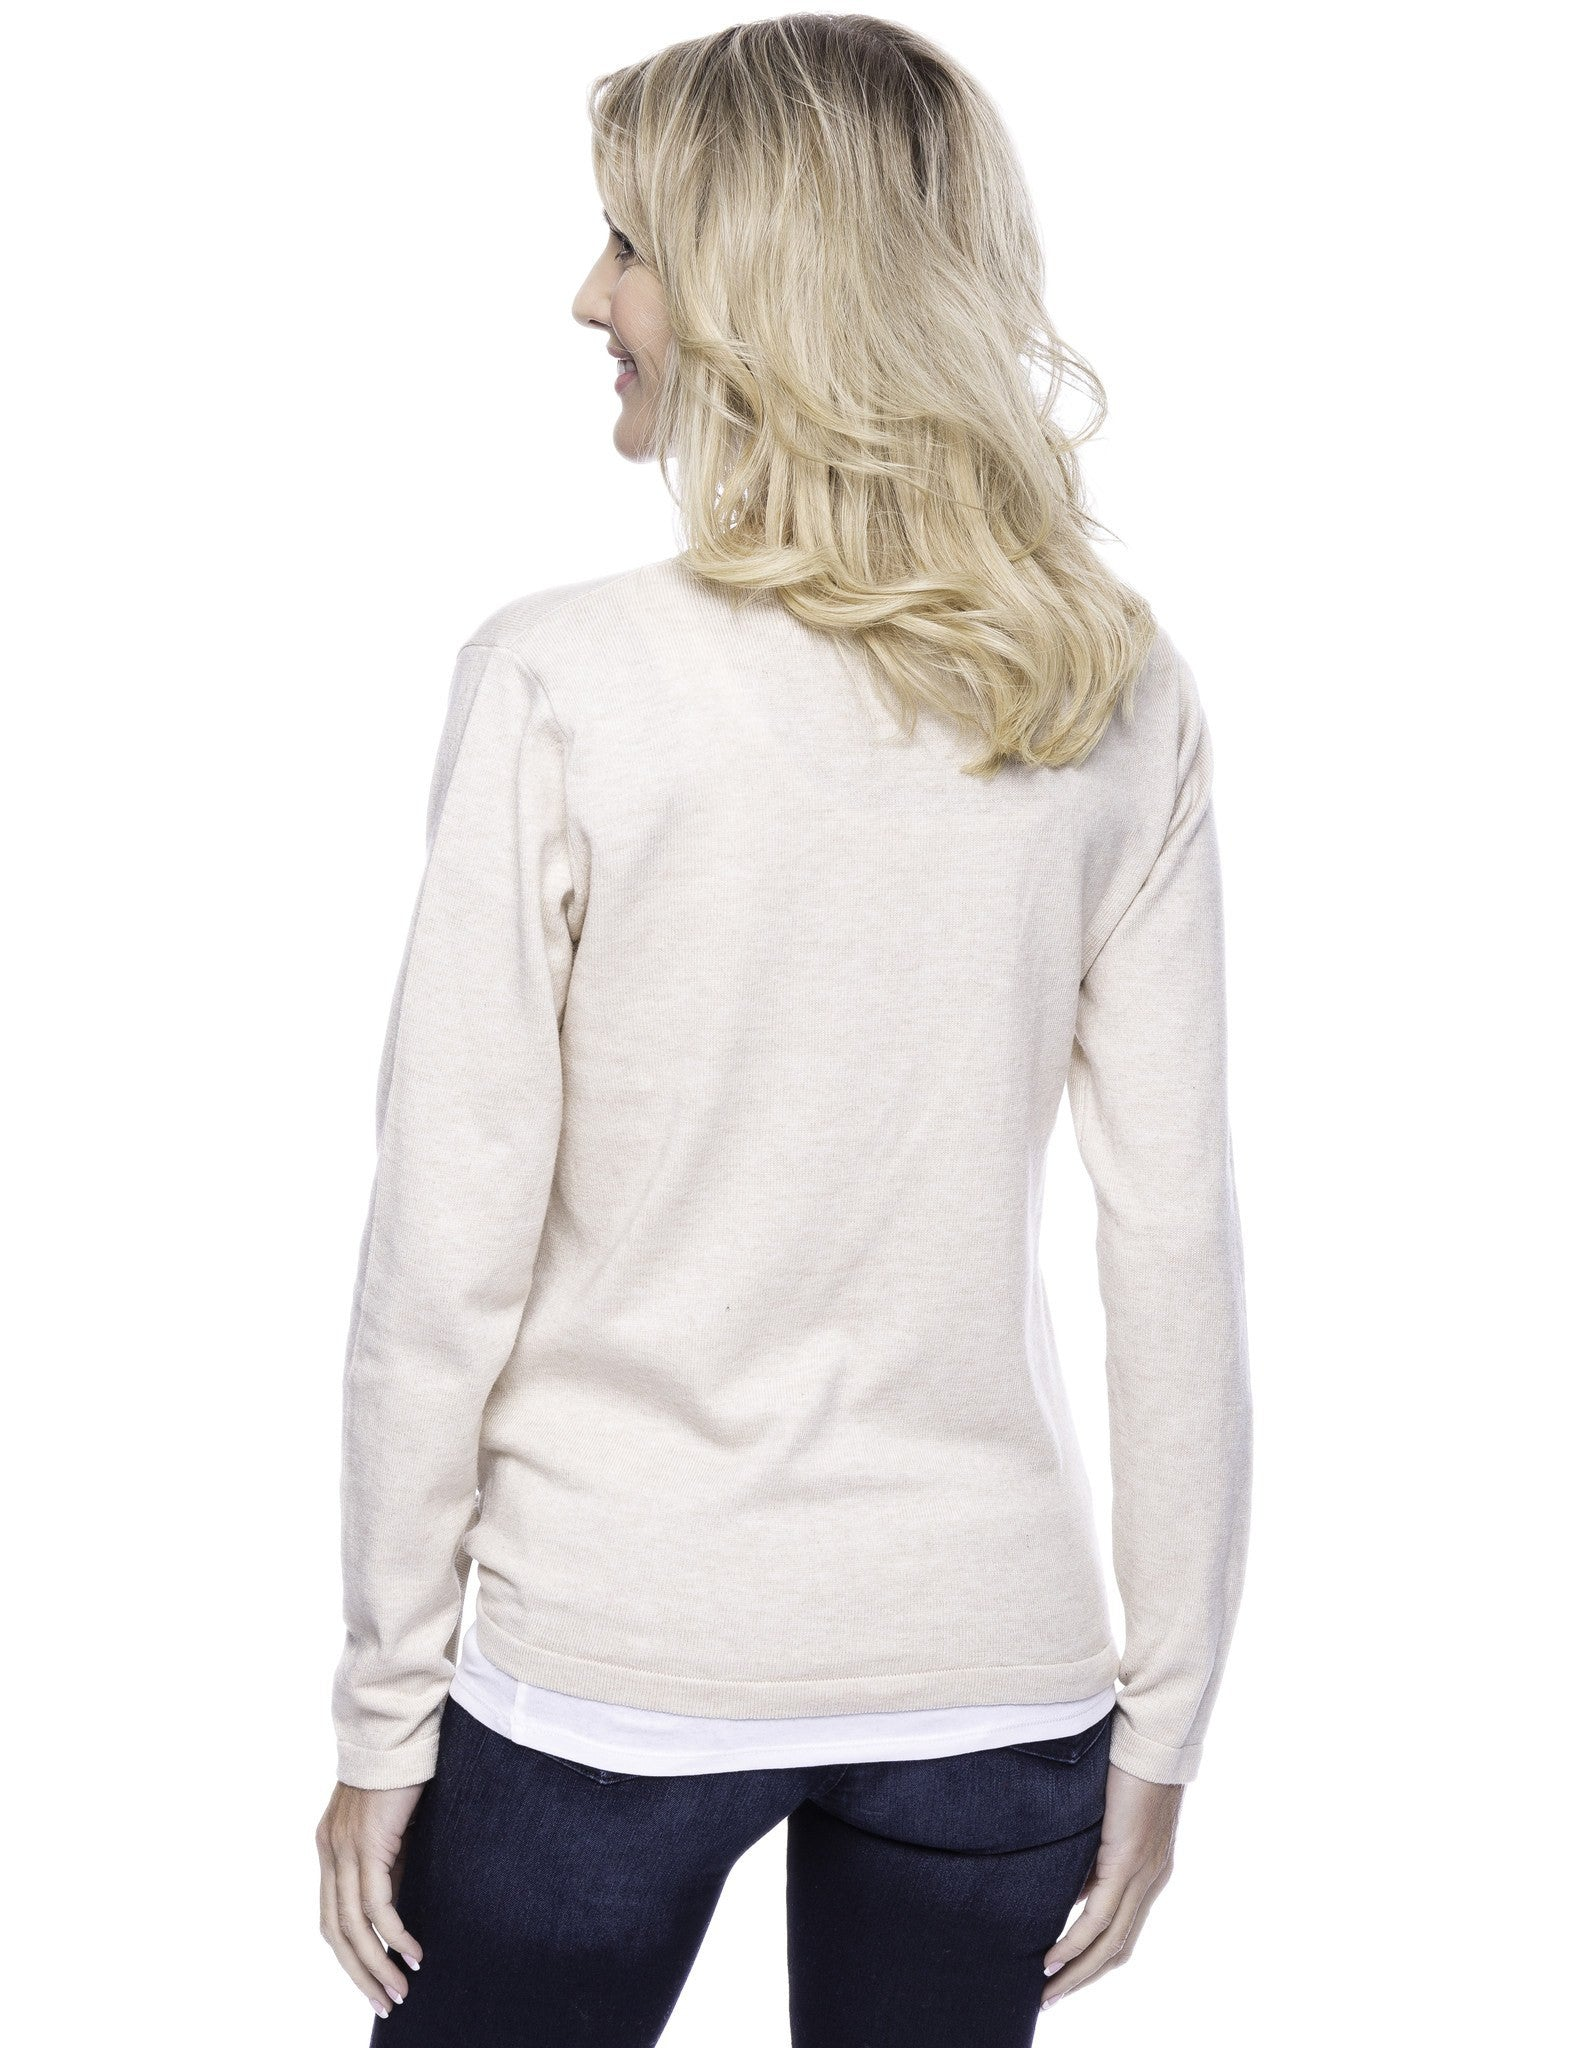 Tocco Reale Women's Cashmere Blend Bateau Neck Sweater with Hem Tie - Oatmeal